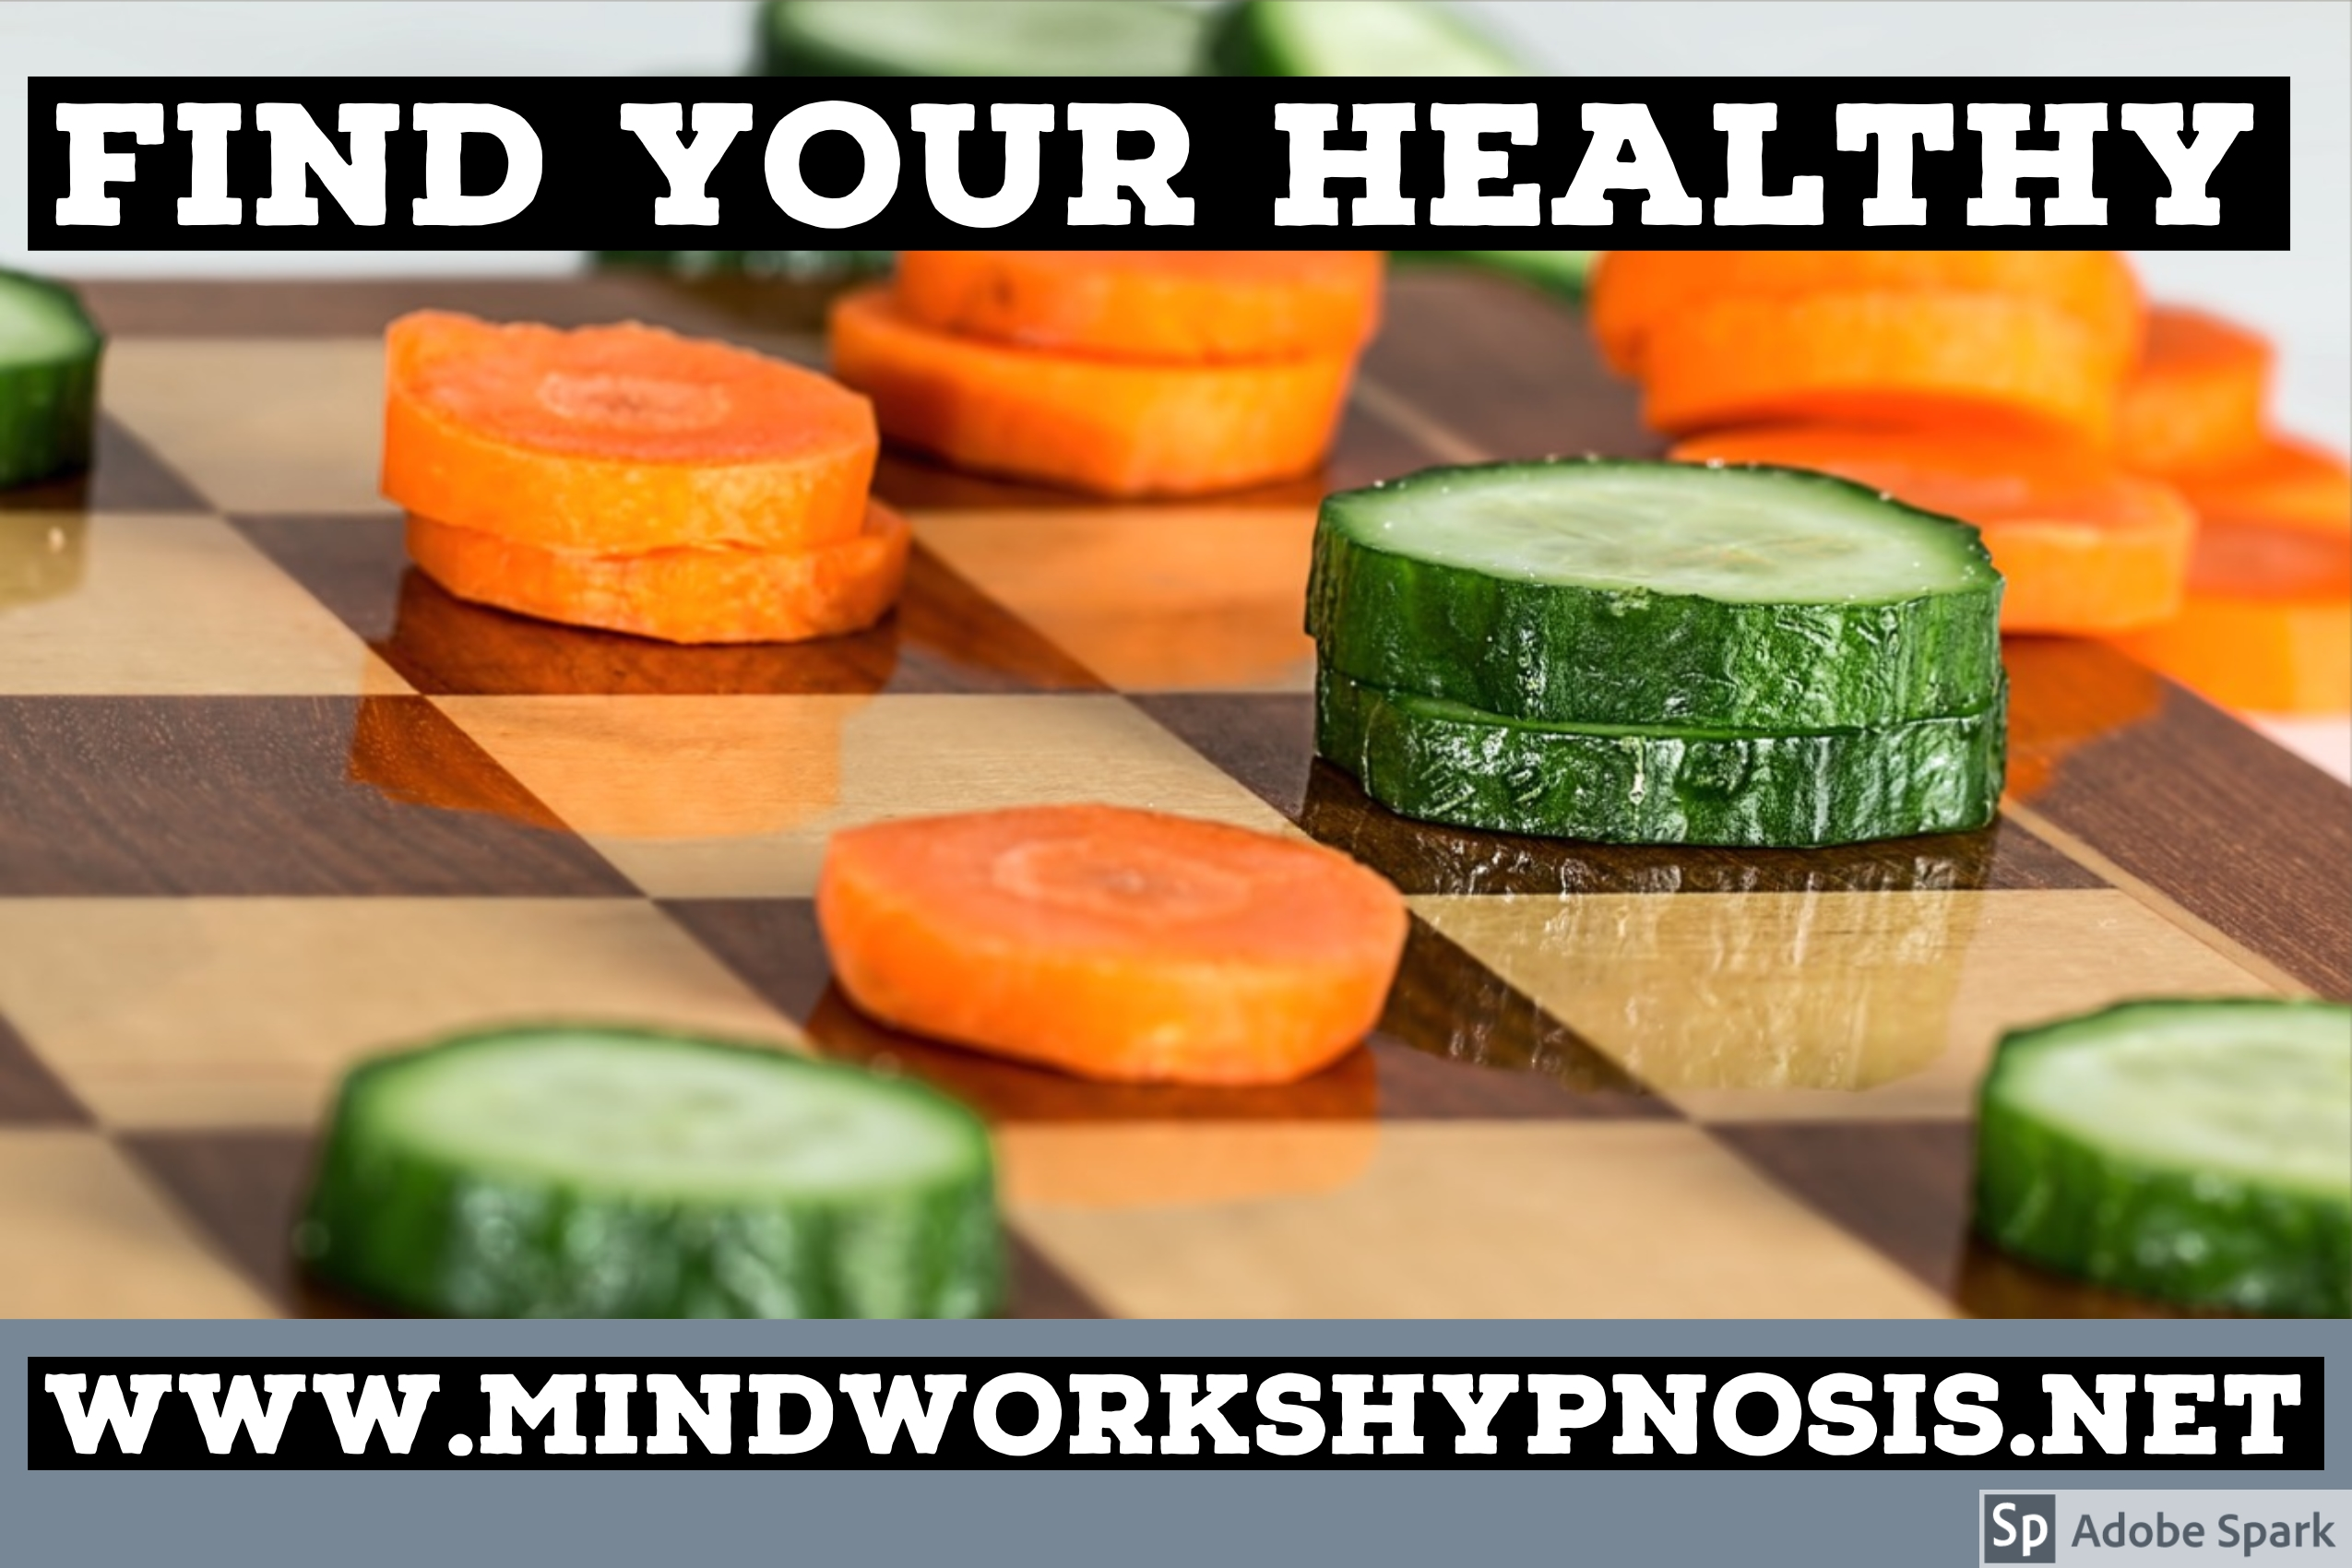 Find healthy eating automated with skilled NLP.